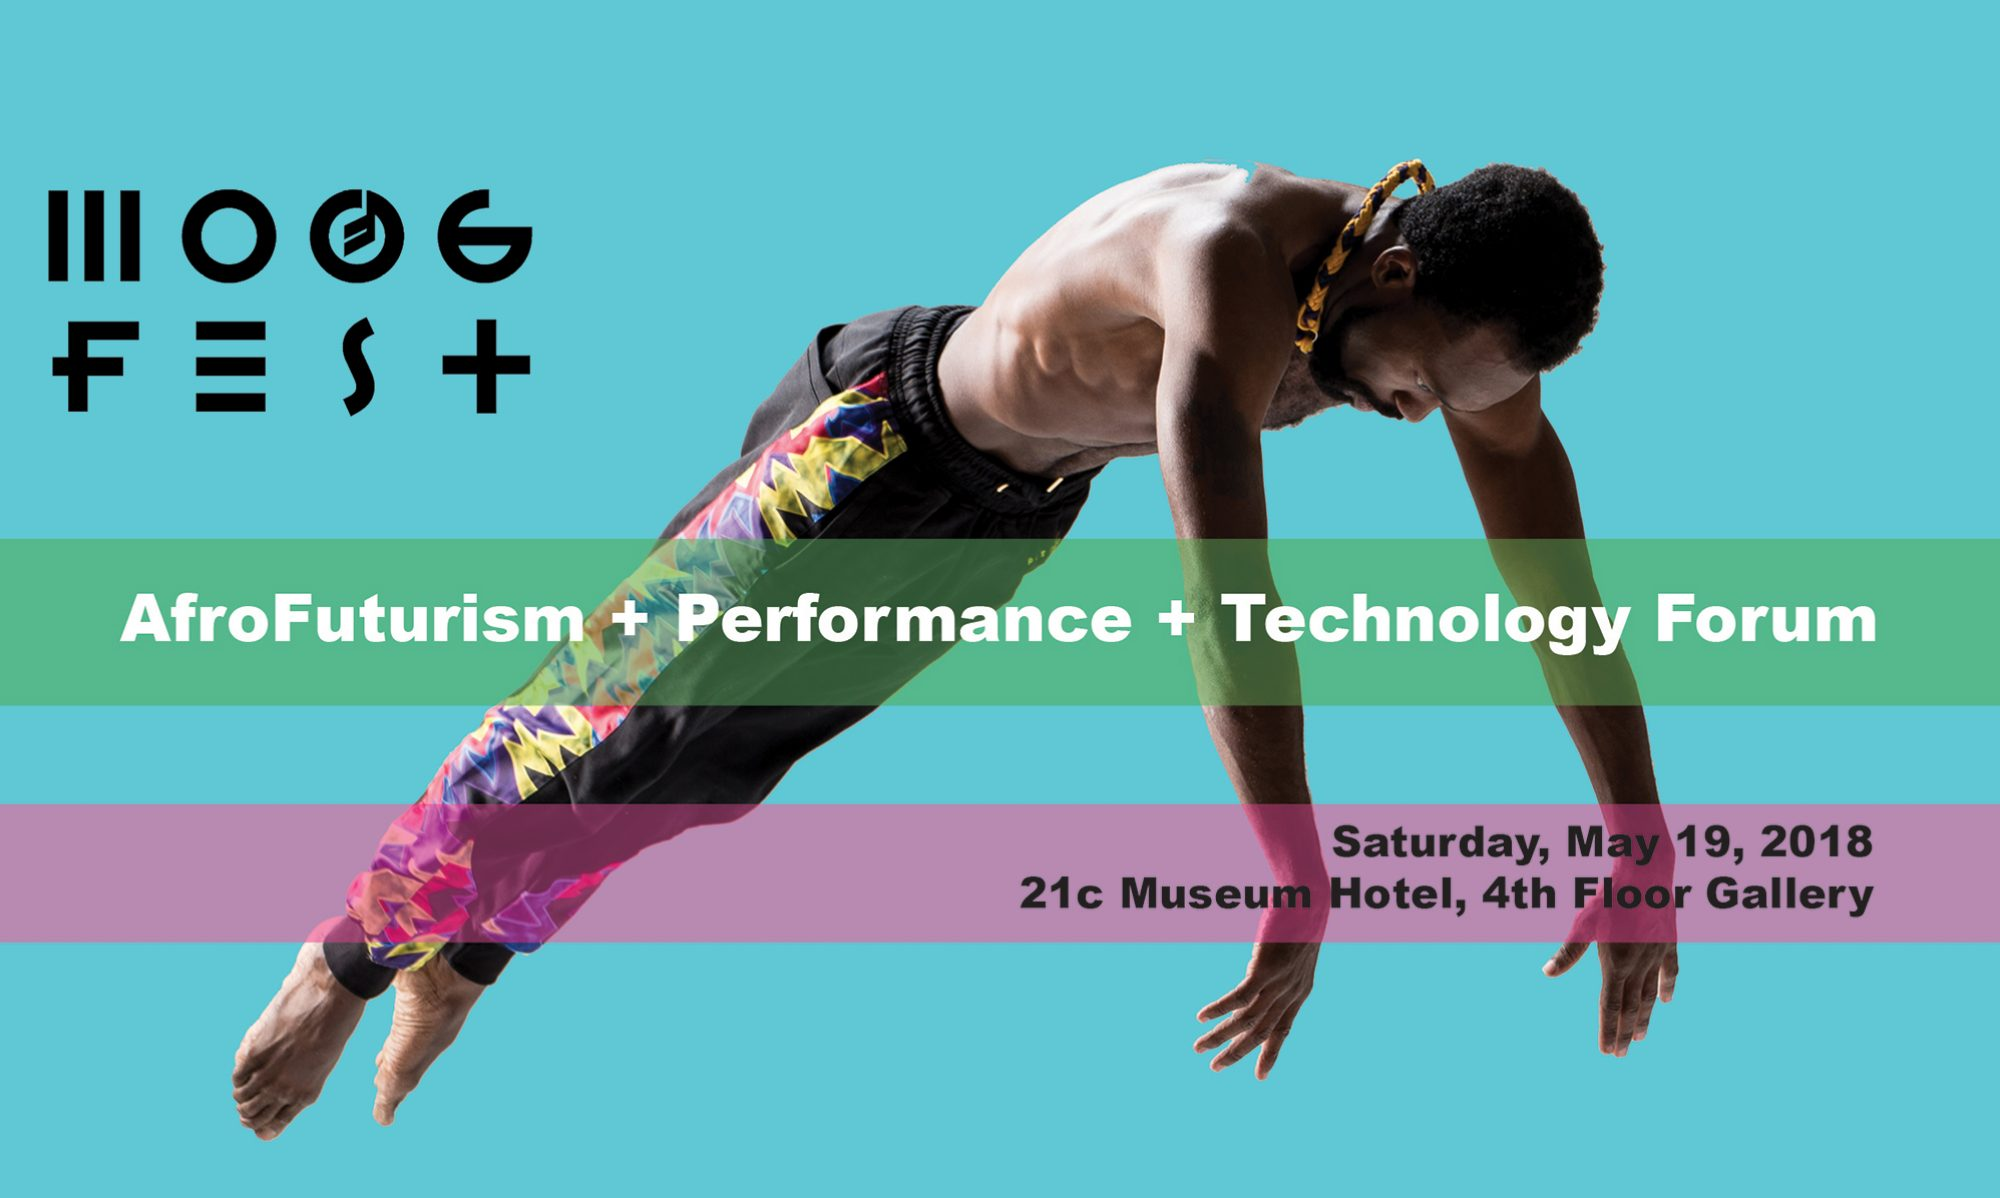 AfroFuturism + Performance + Technology